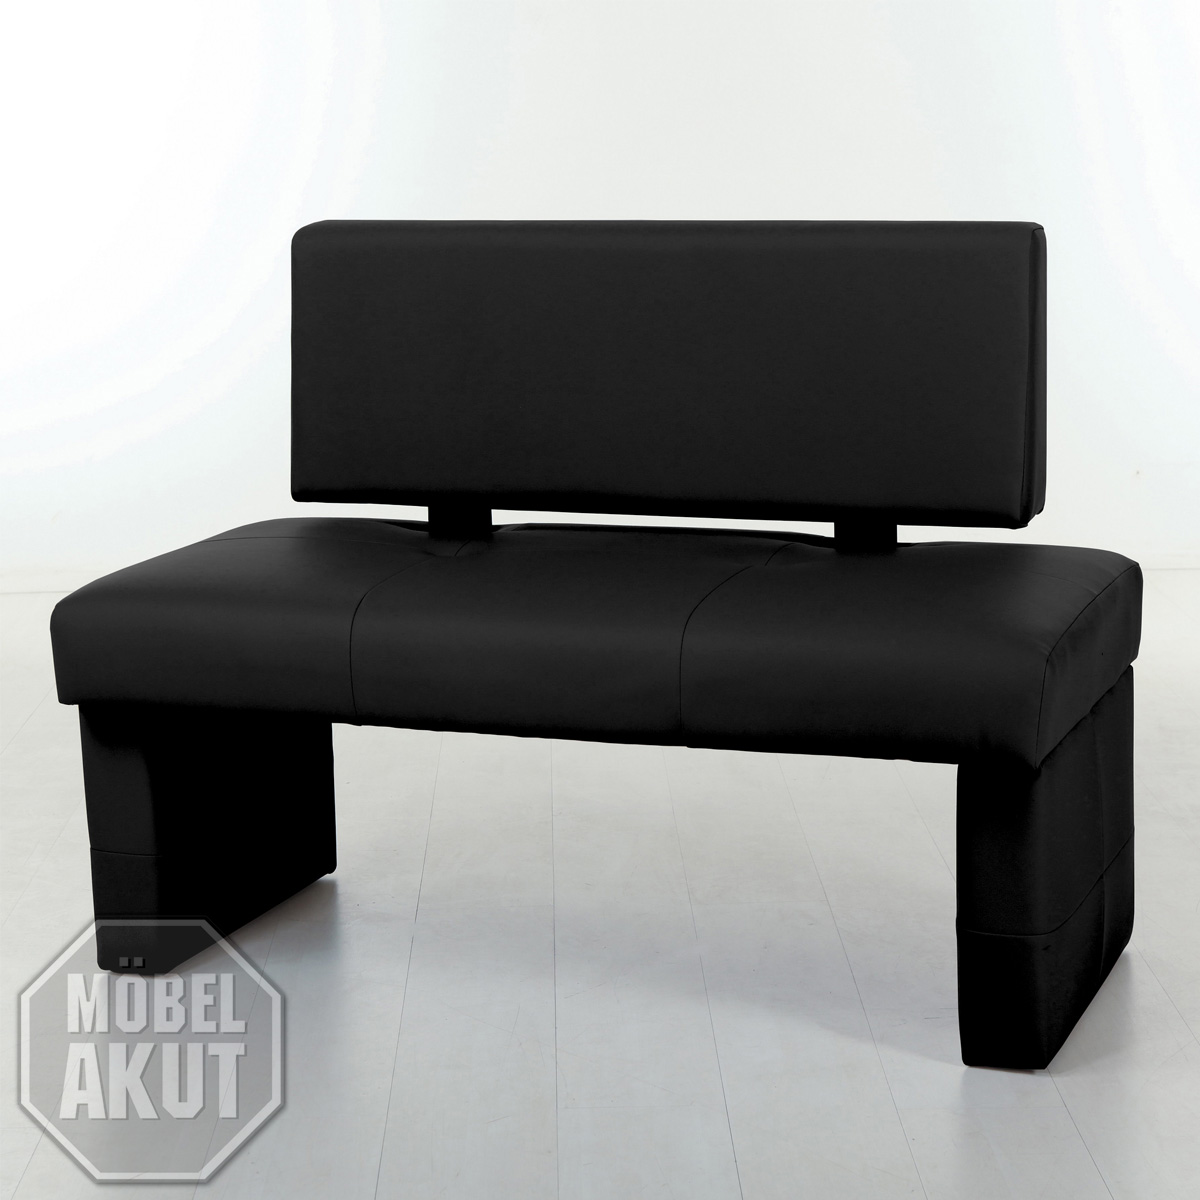 bank dimas sitzbank polsterbank mit r ckenlehne in schwarz. Black Bedroom Furniture Sets. Home Design Ideas